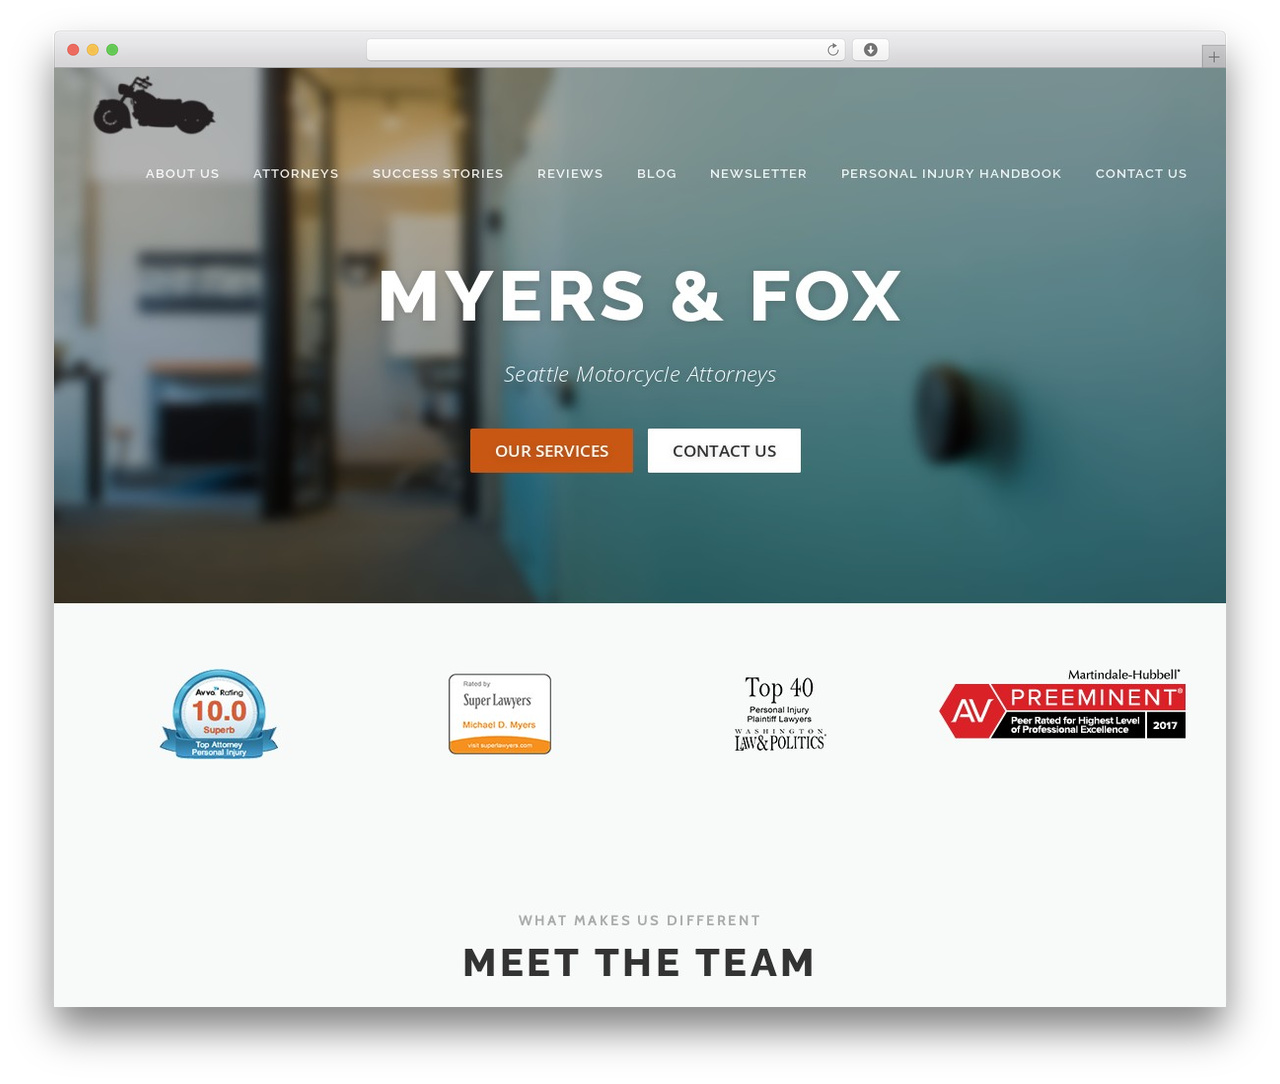 OnePress free WordPress theme by FameThemes - myers-fox com